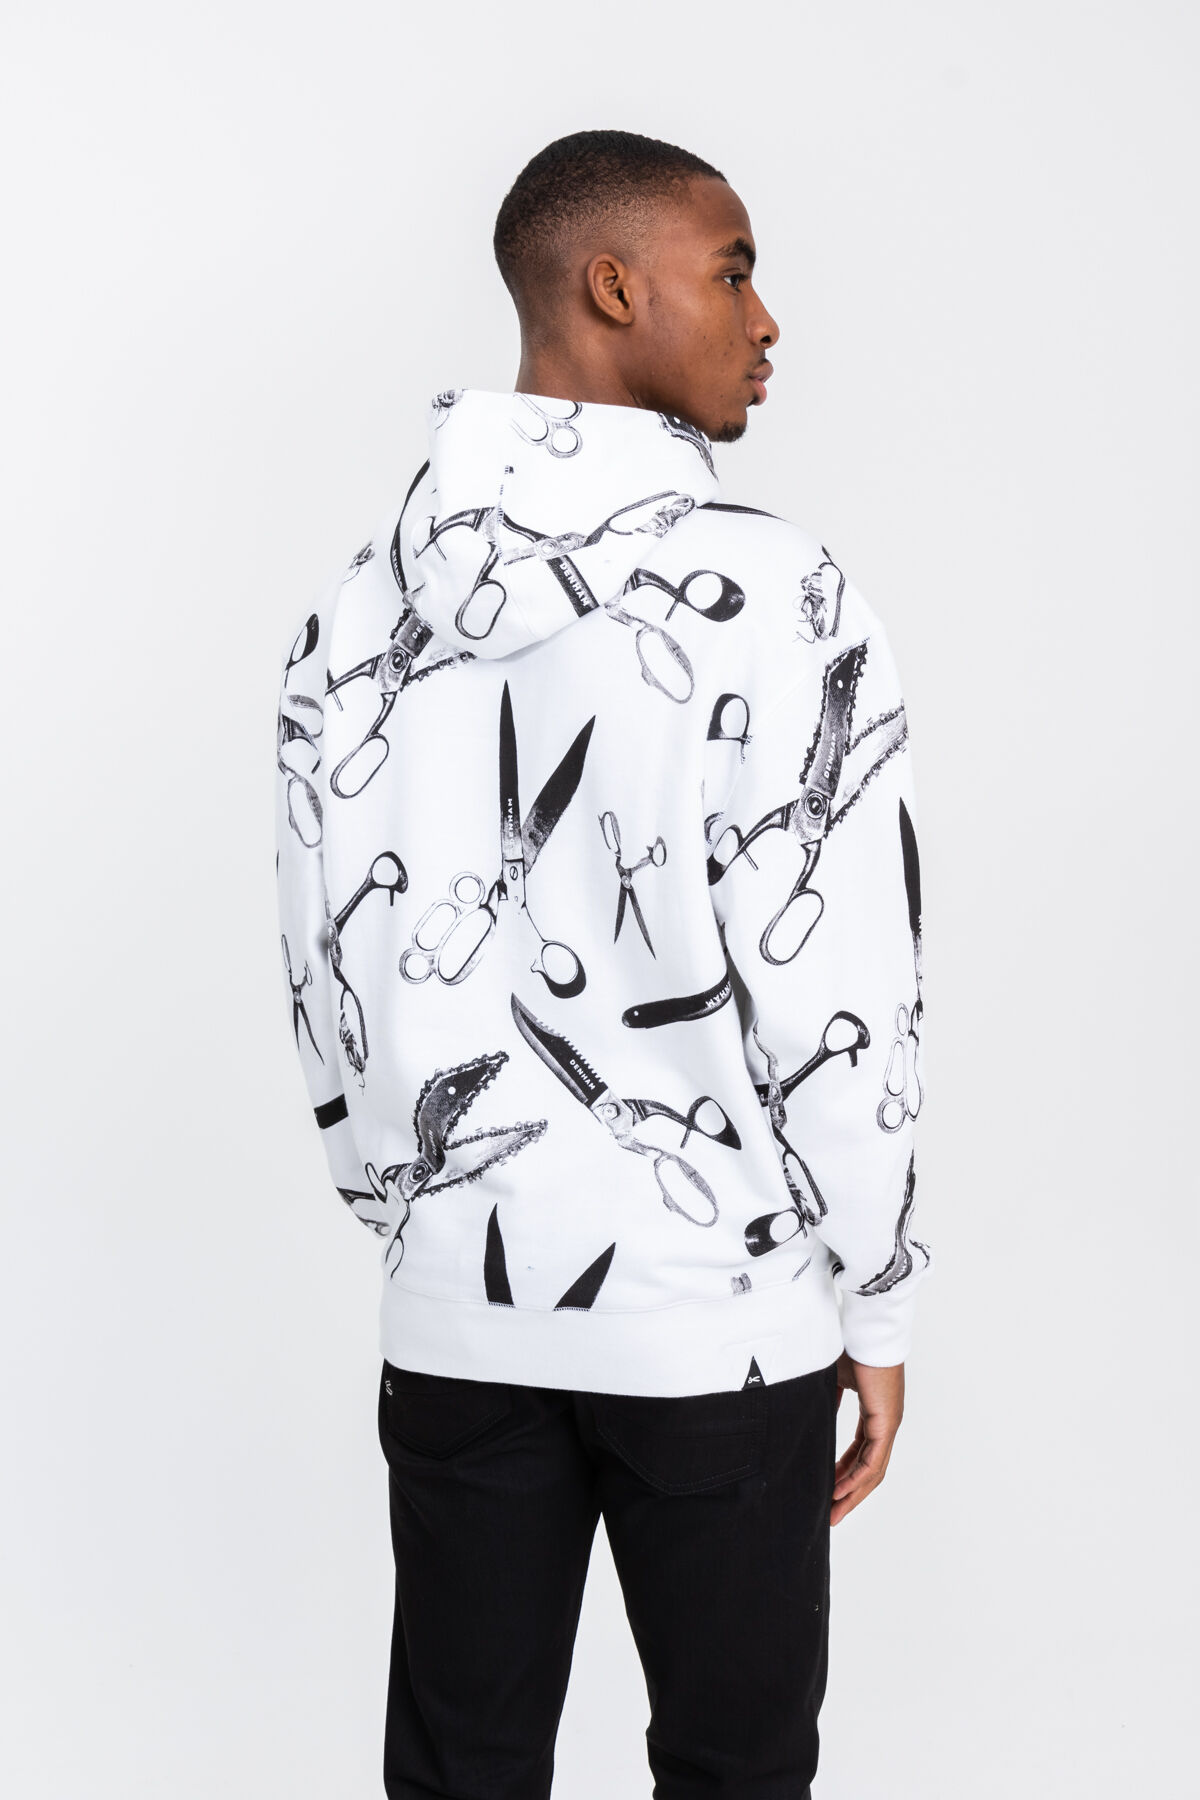 ACCORD SWEAT Scissor All-Over Print Cotton - Oversized Fit